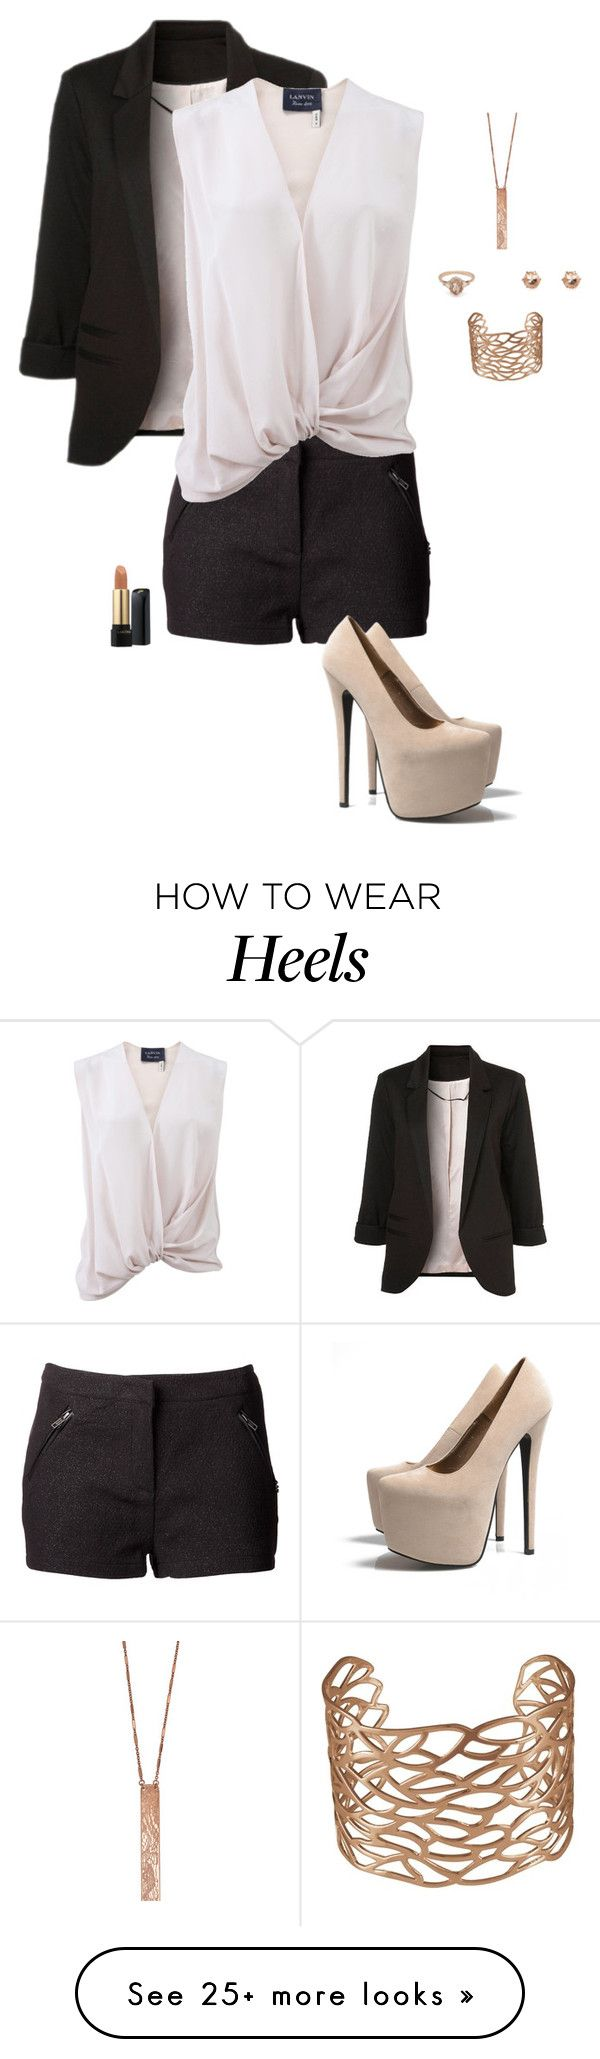 """""""Nude Heels"""" by gone-girl on Polyvore featuring WithChic, Maison Scotch, Lanvin, BEA, River Island, Clara Jasmine and AX Paris"""